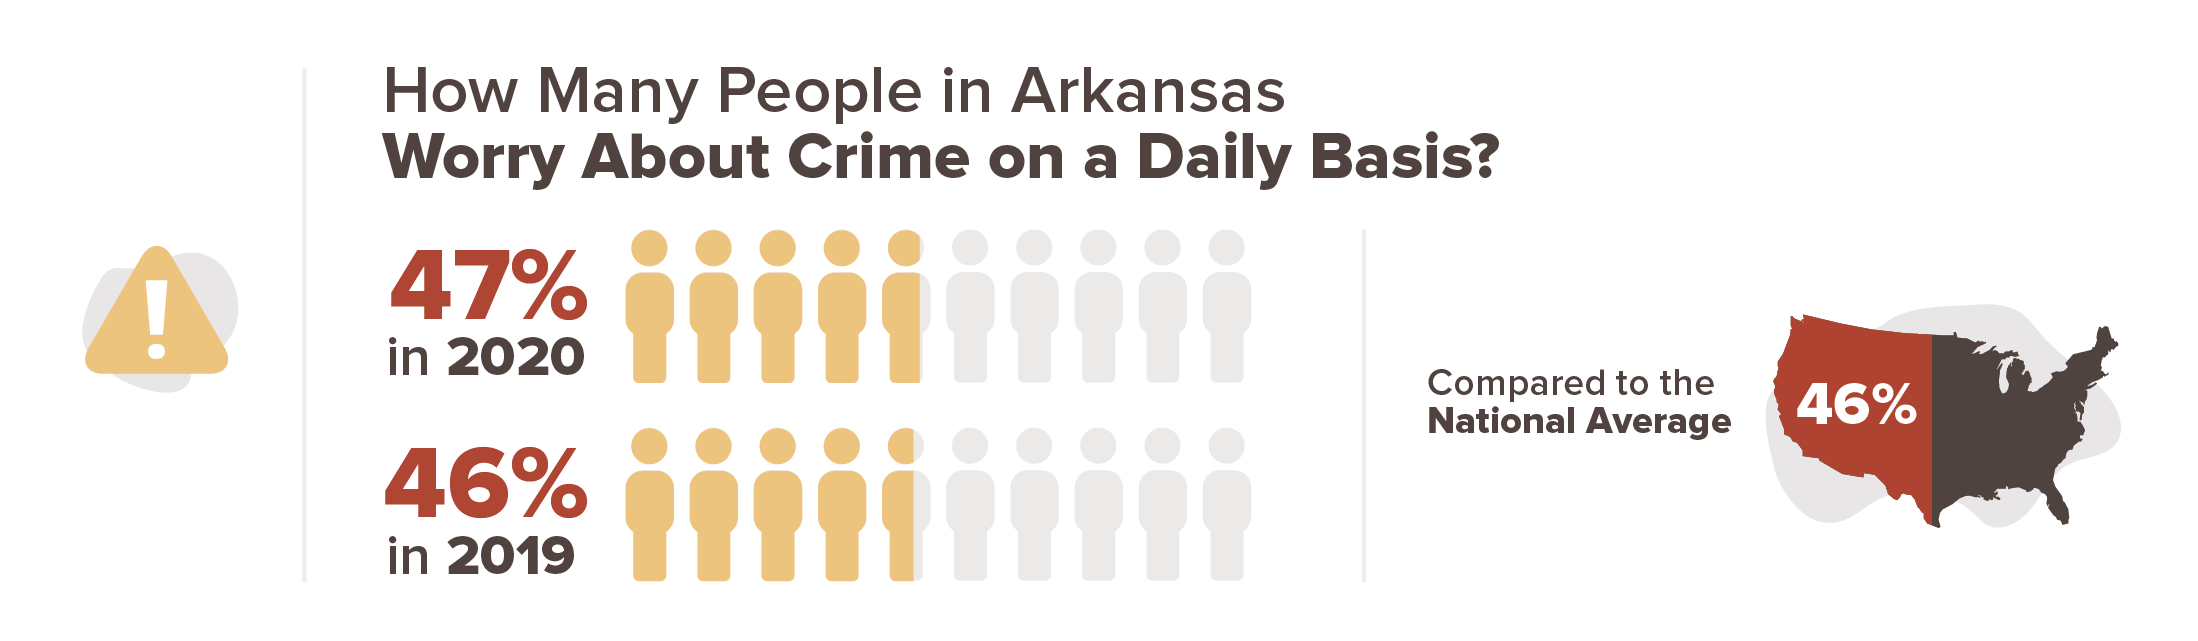 Arkansas crime stats infographic